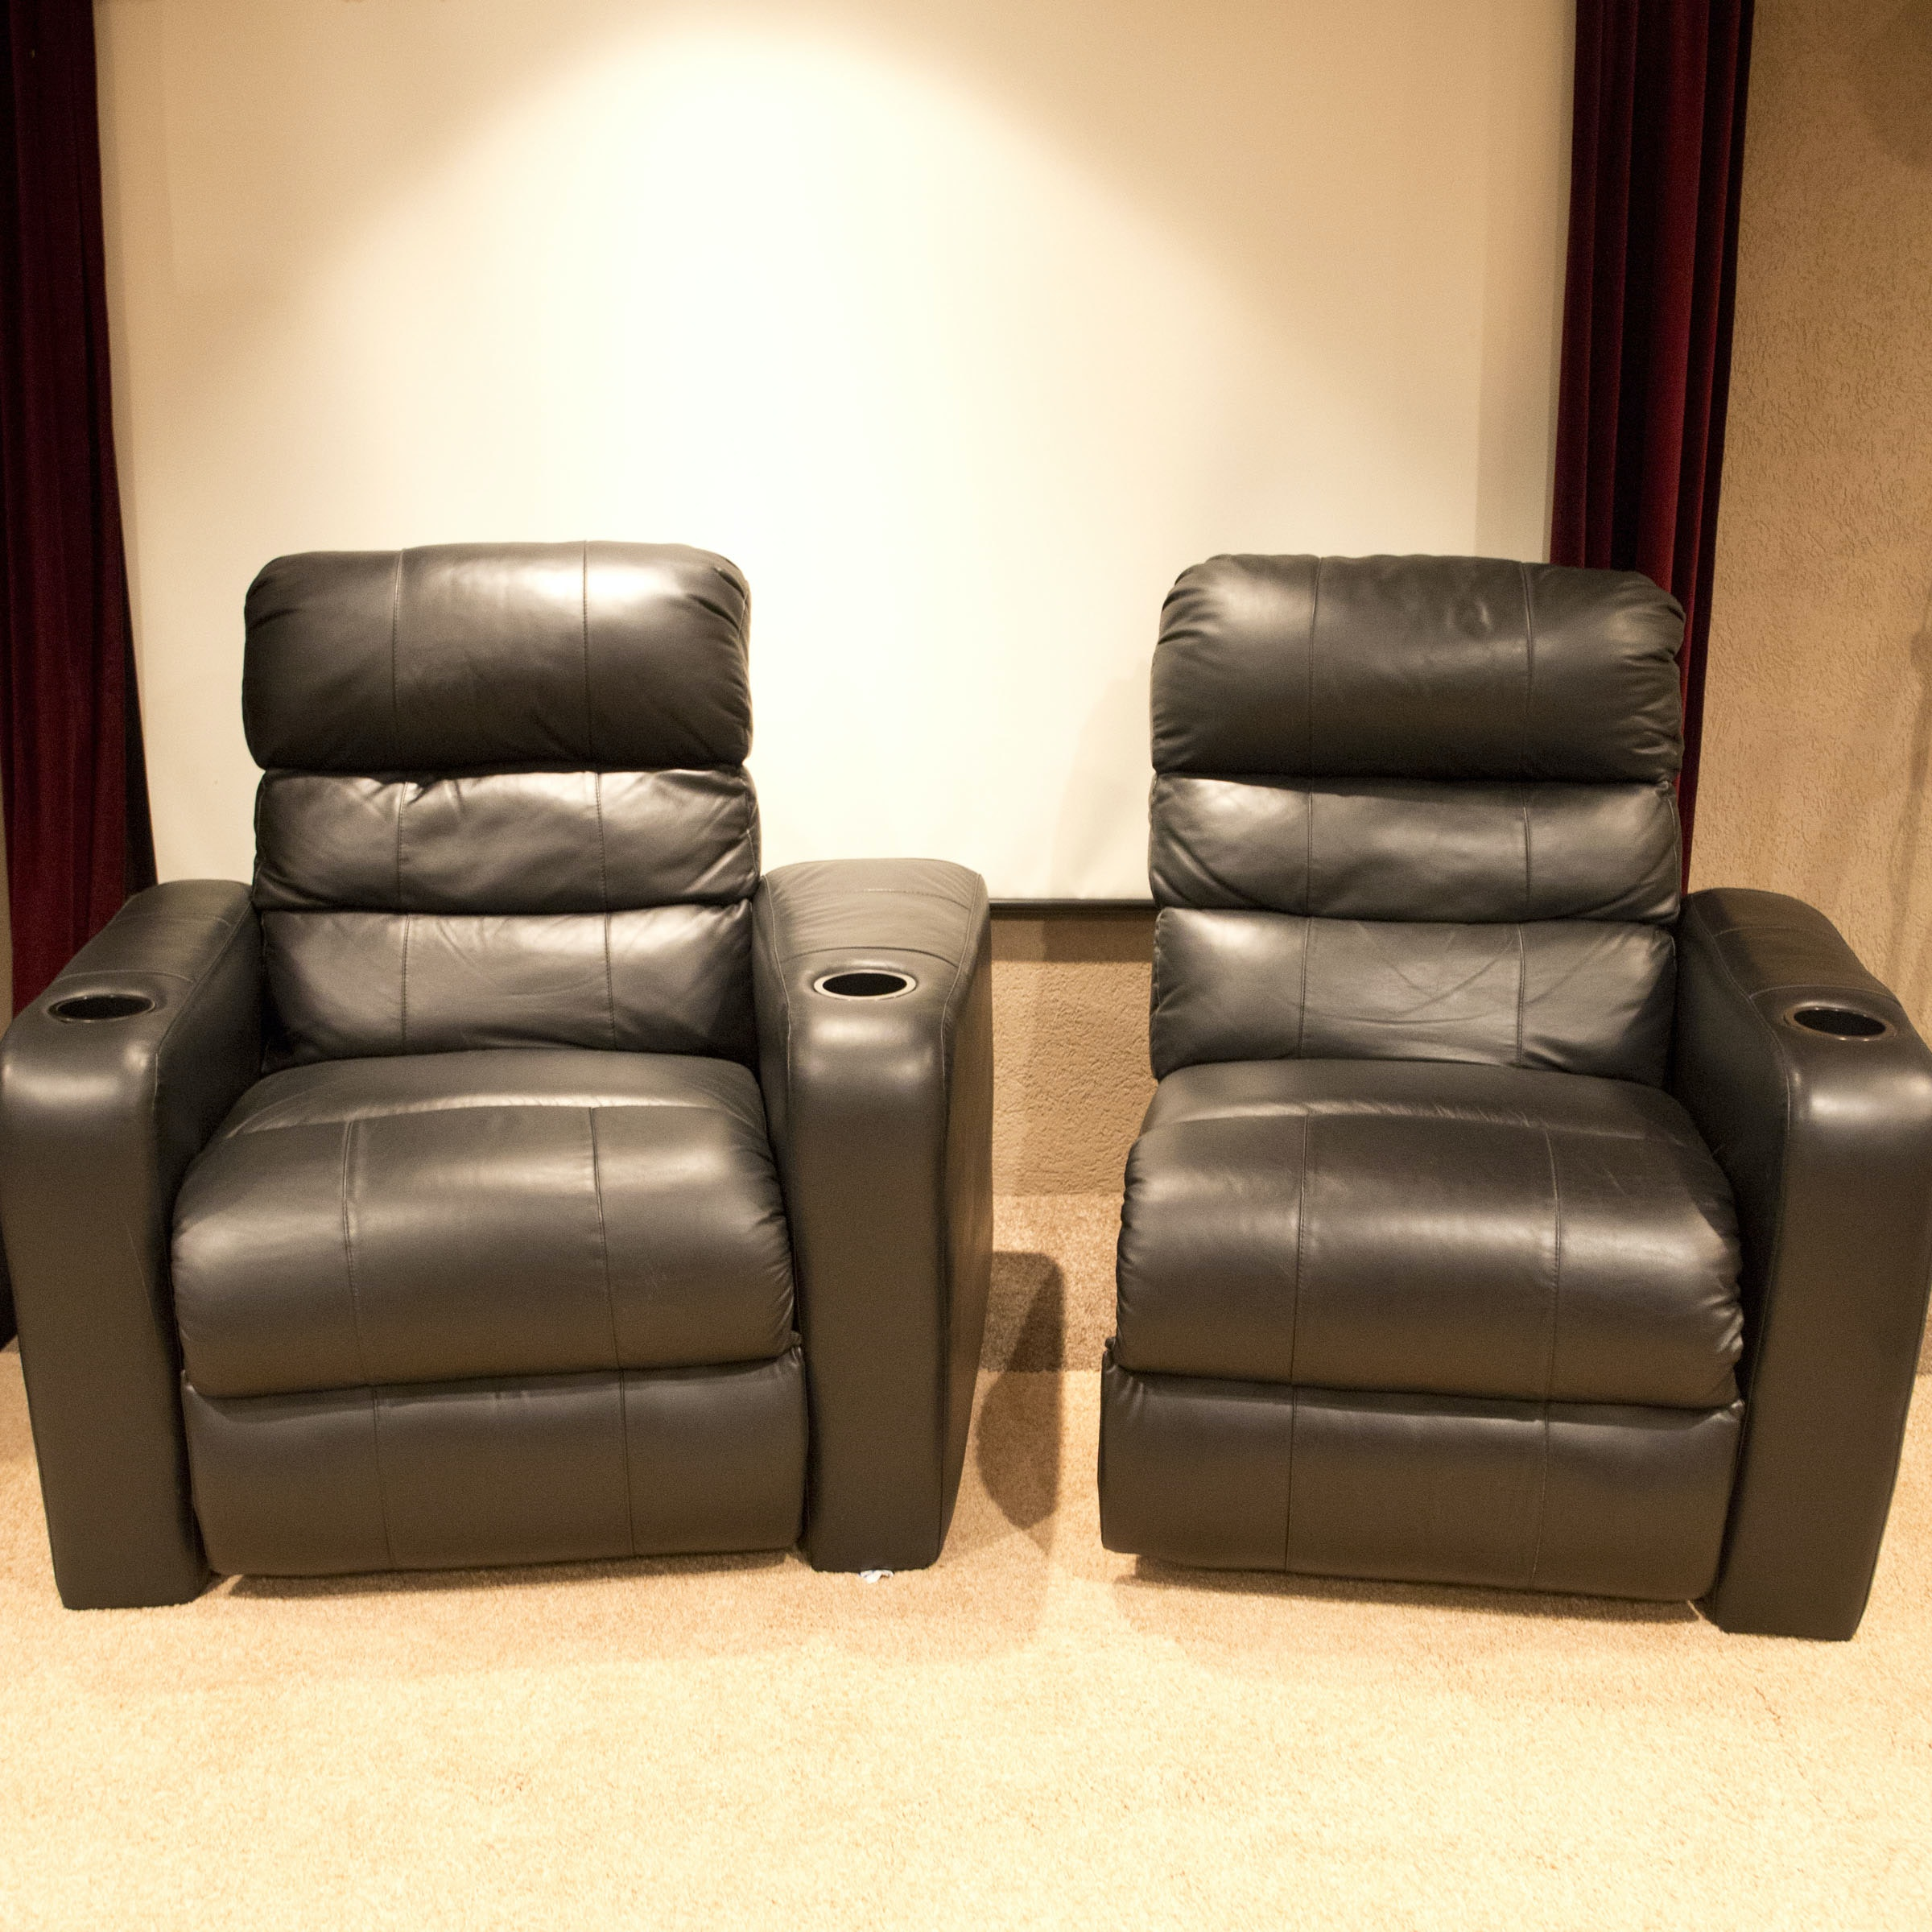 Marvelous Get Free High Quality HD Wallpapers Movie Theater Leather Seats Dc